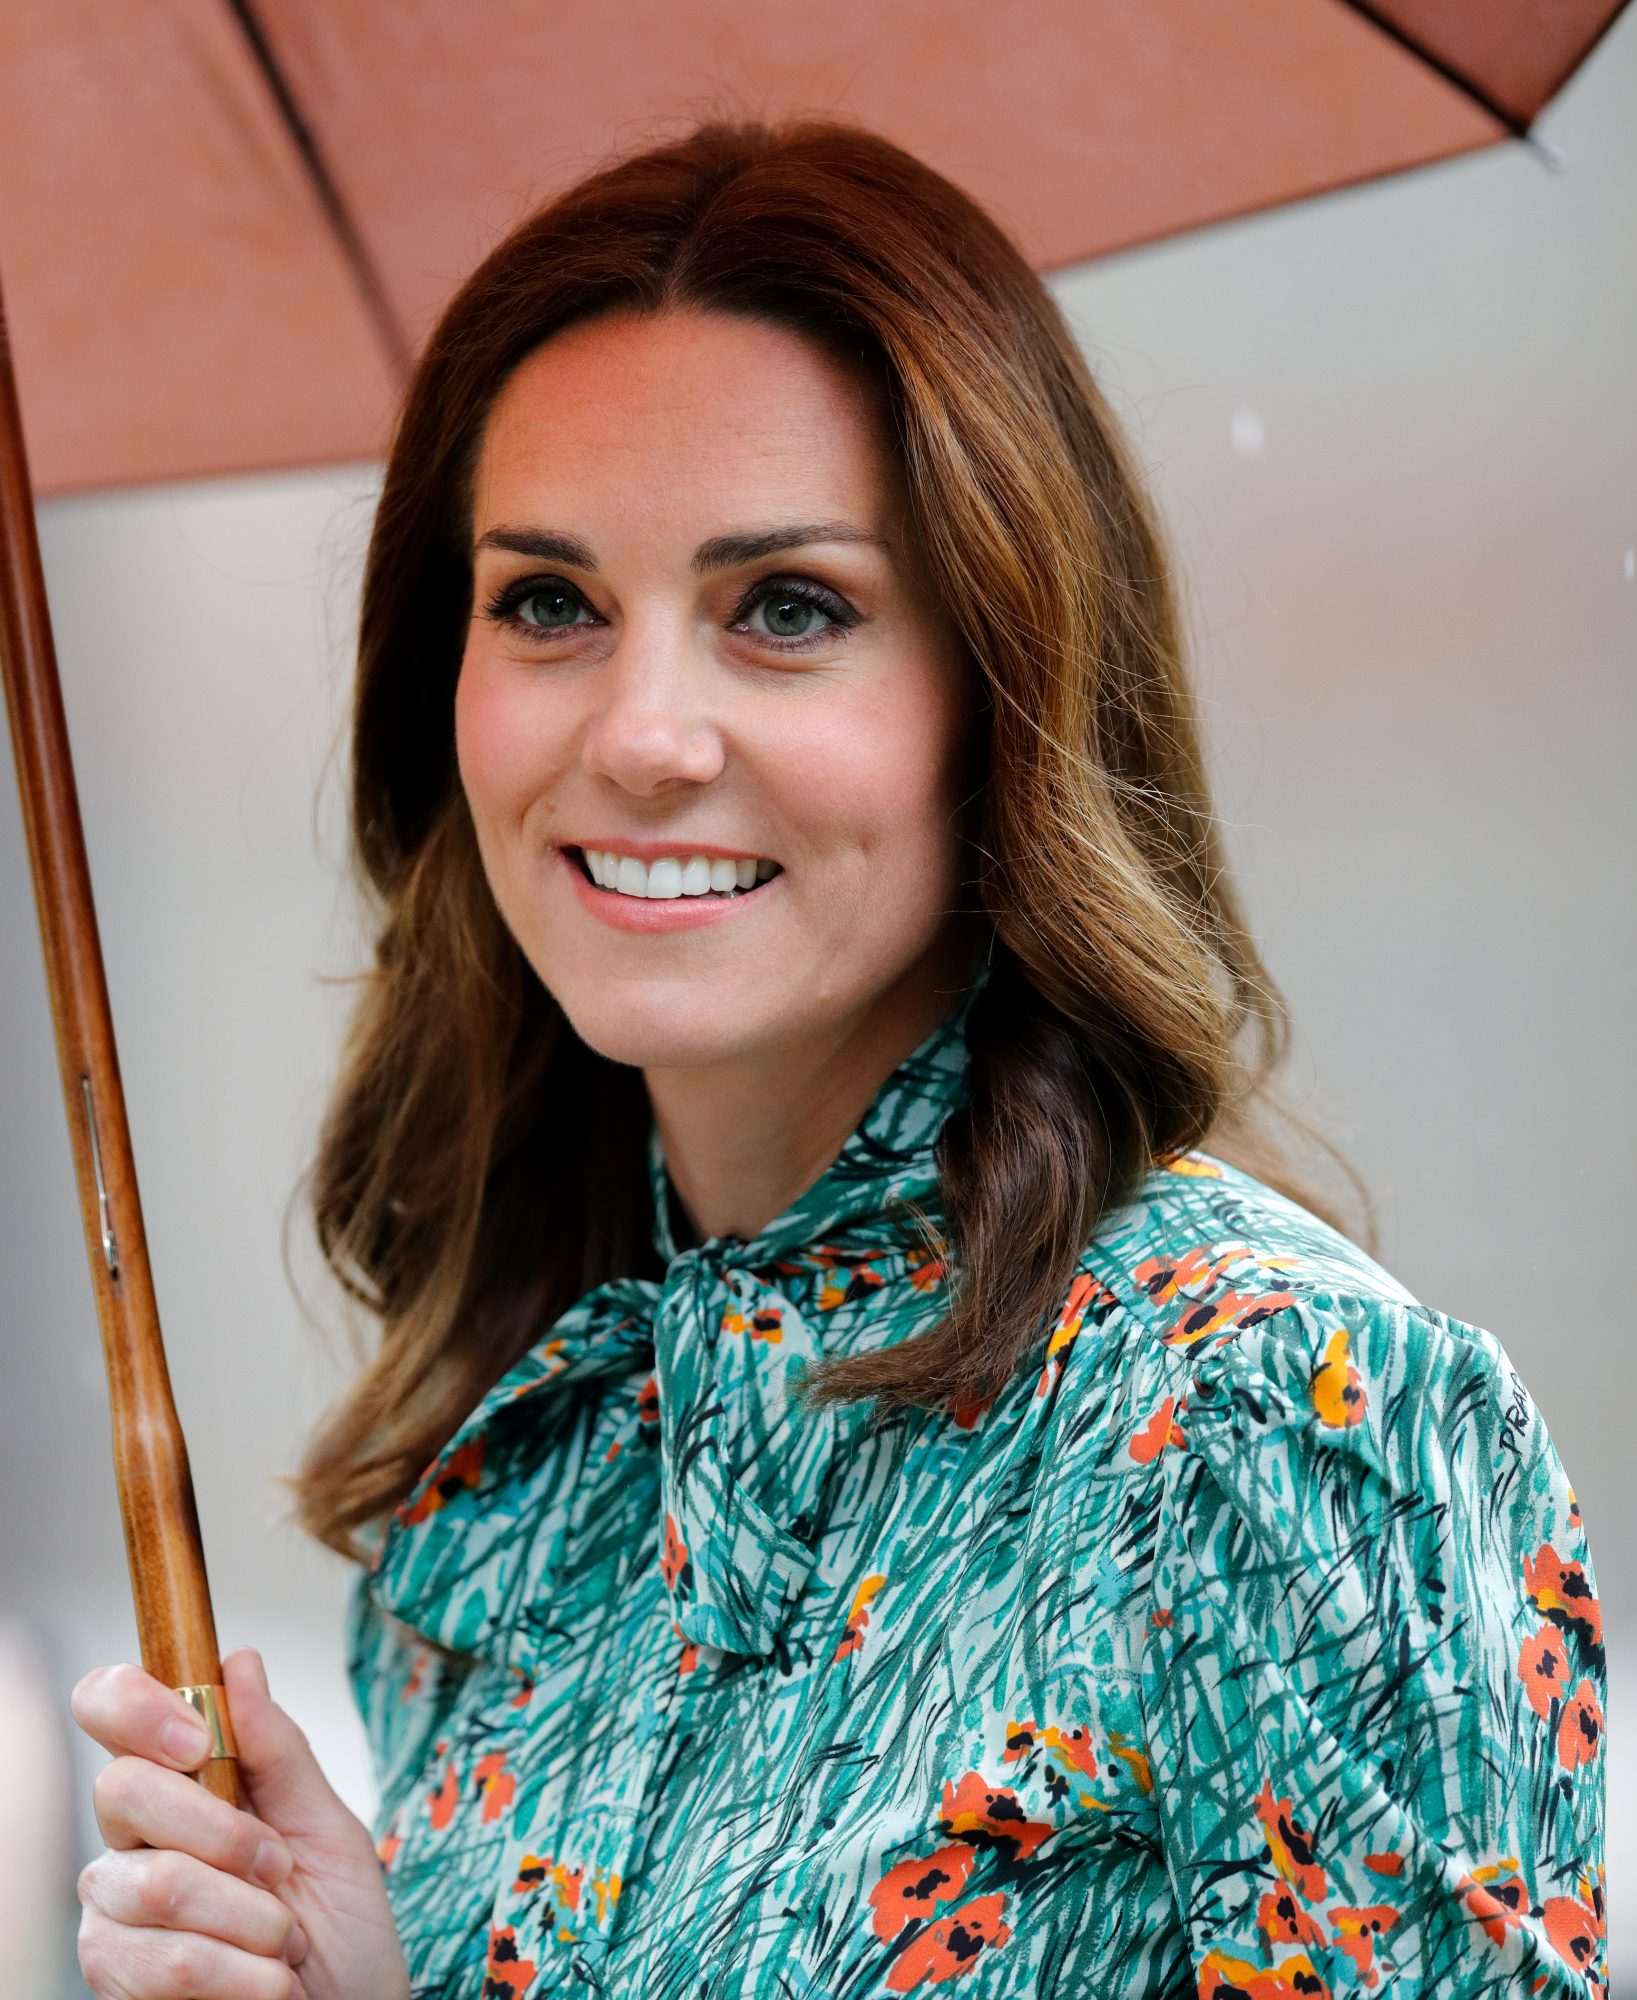 Kate Middleton Proved Her Mom Skills with This Quick-Thinking Move Today